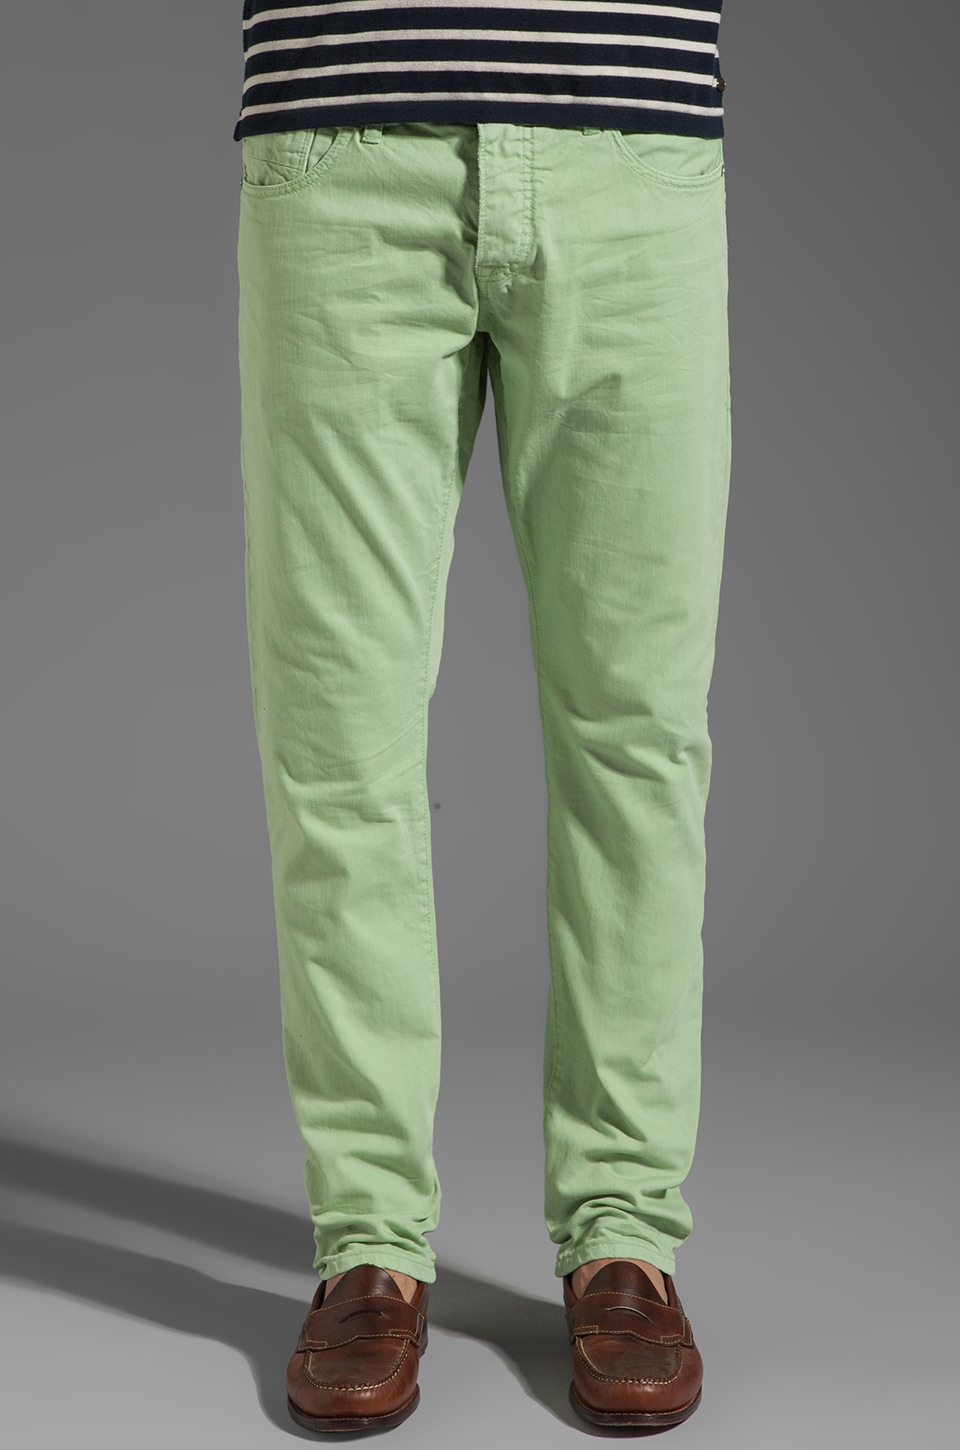 Scotch & Soda Ralston Slim Garment Dye in Mint